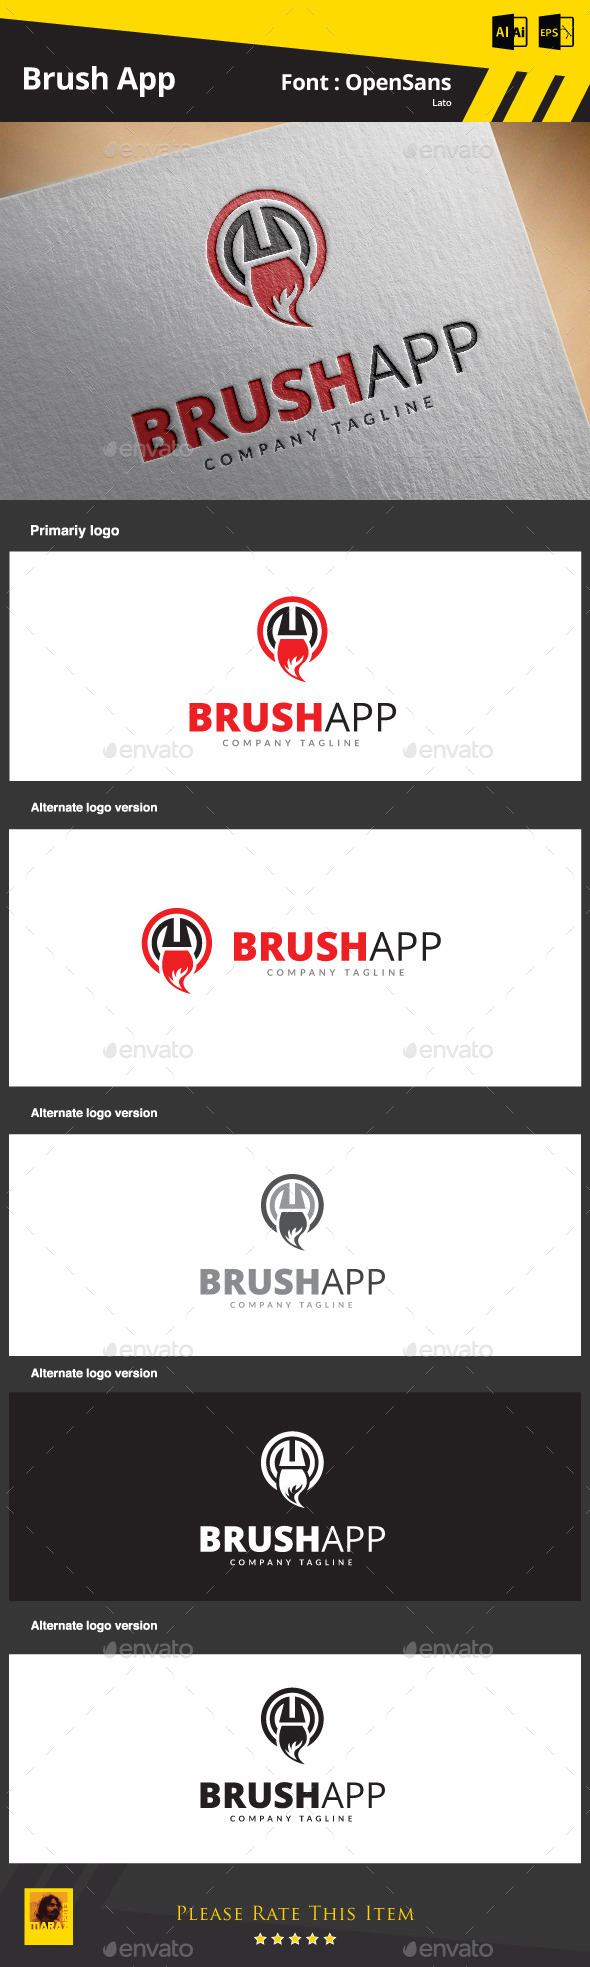 GraphicRiver Brush App 9090858